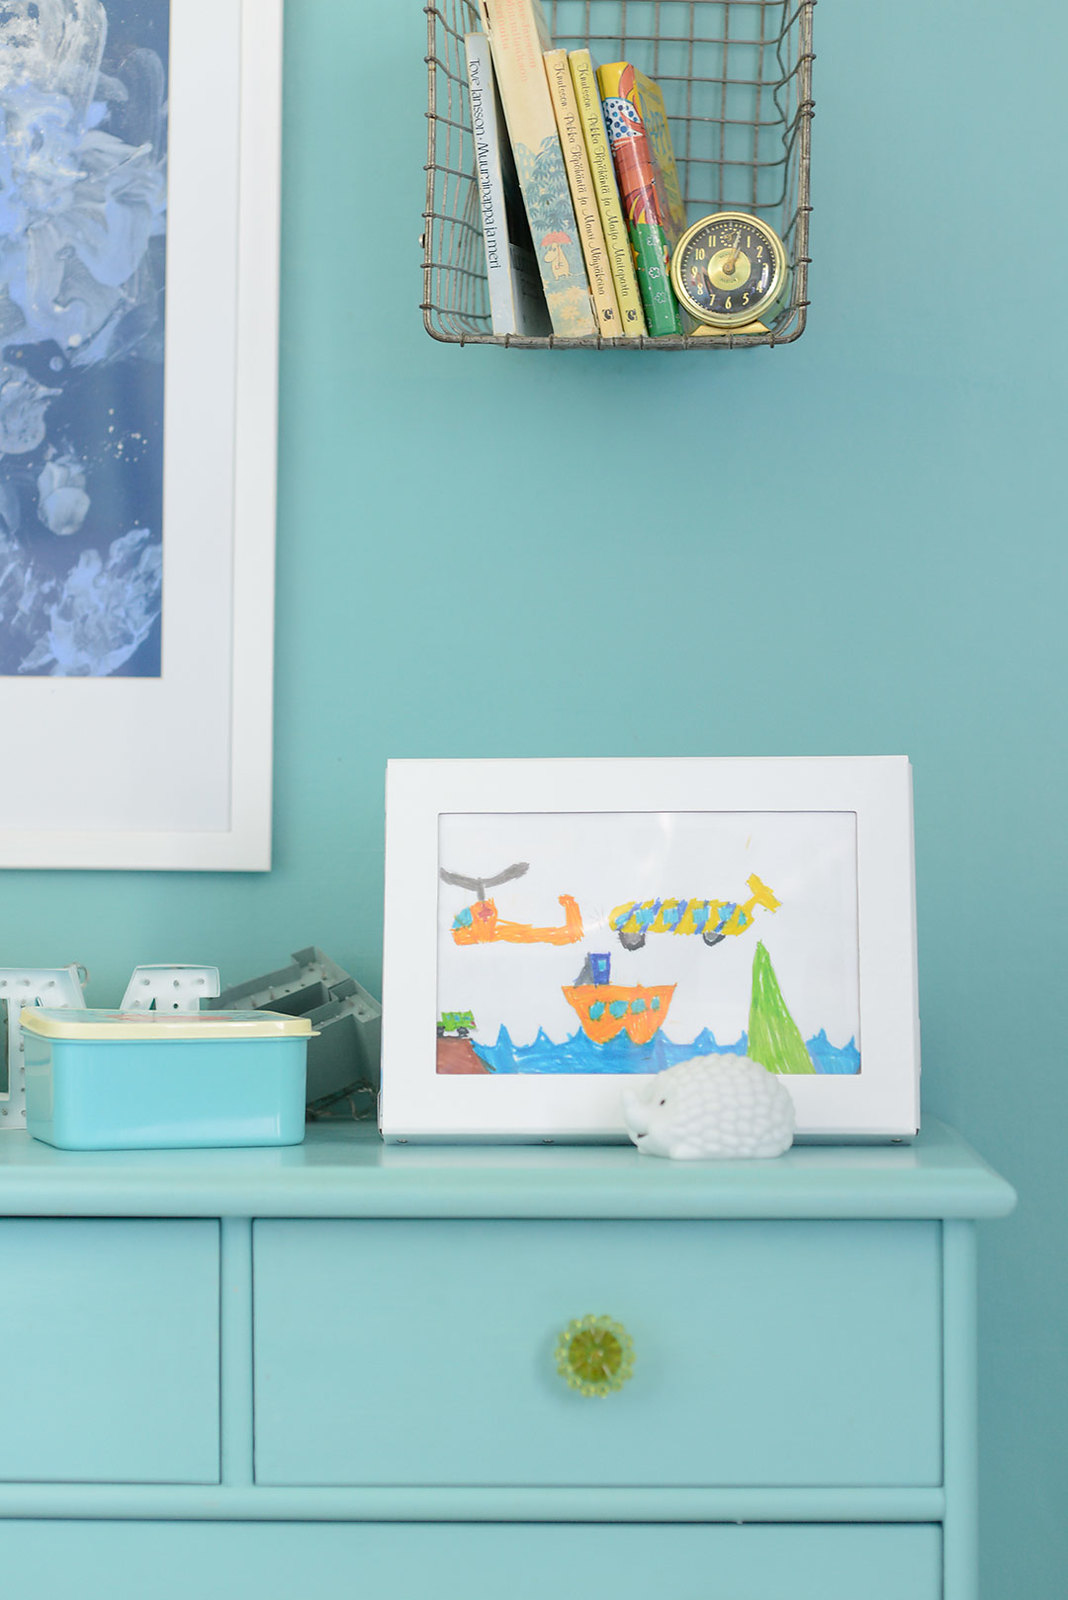 Great way to store and display kids' drawings